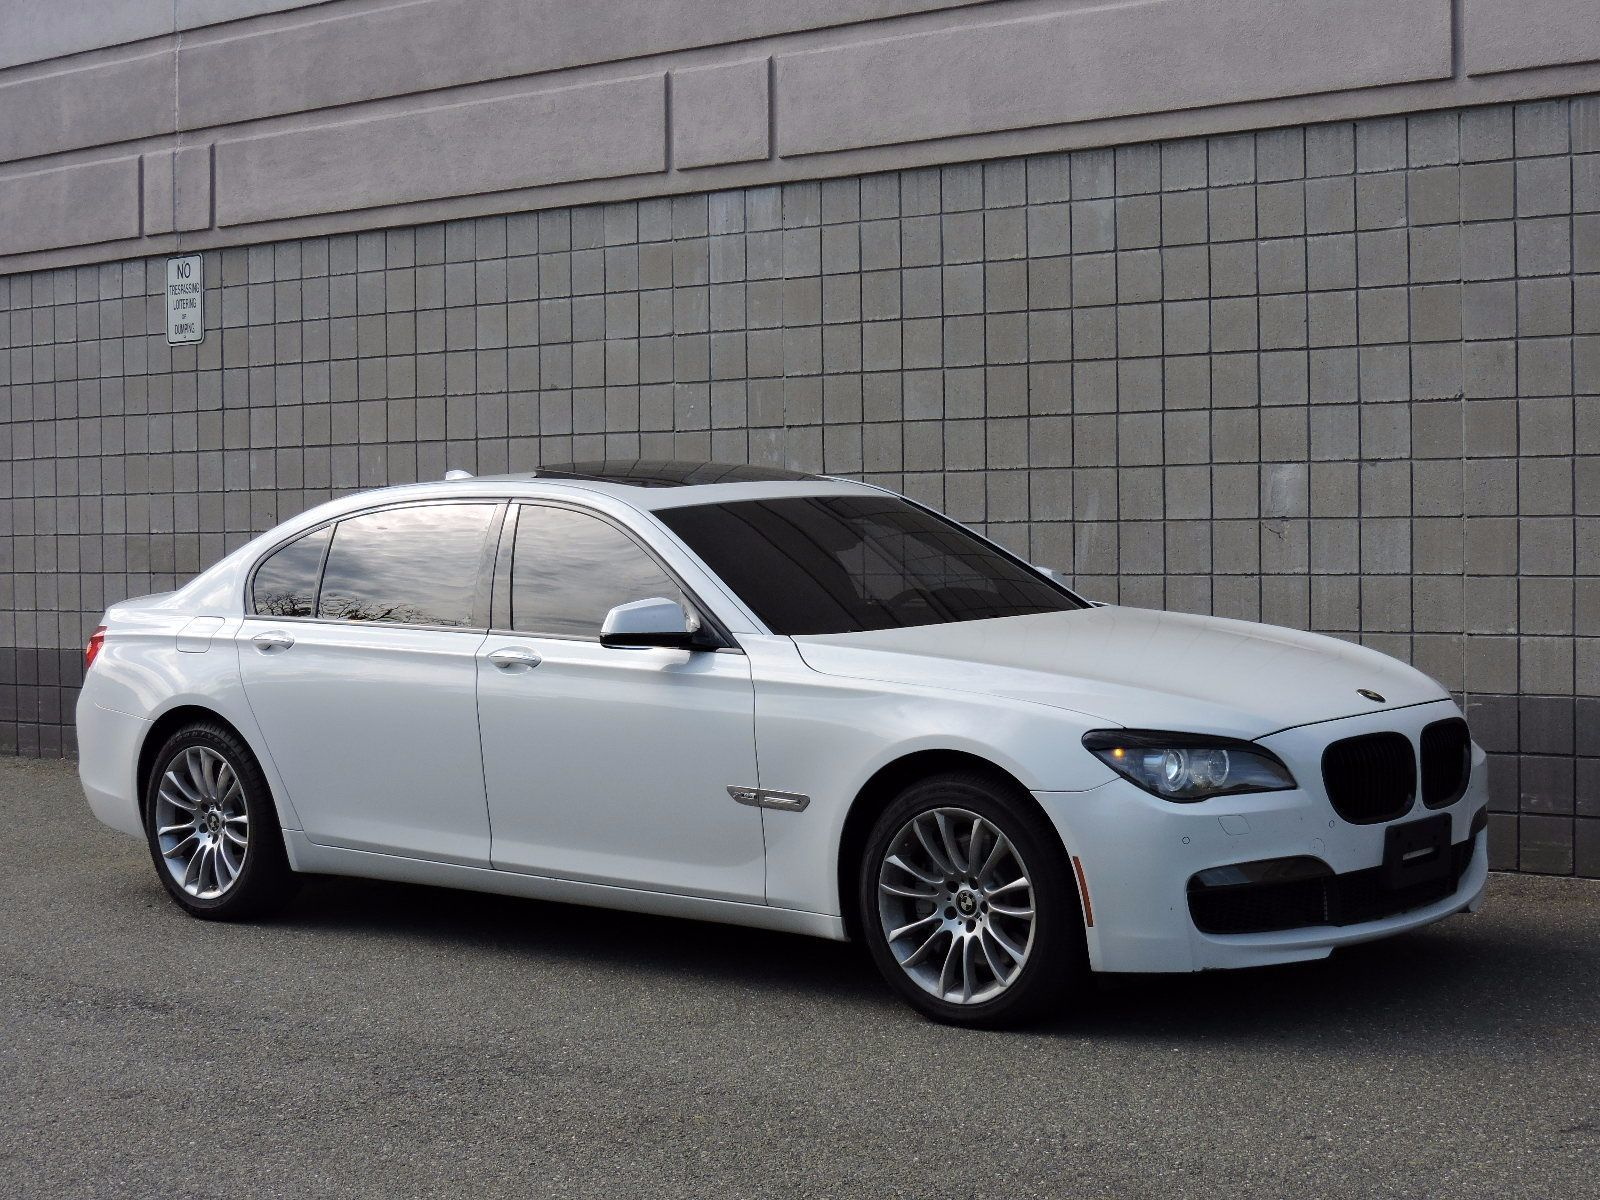 used 2012 bmw 750li xdrive at auto house usa saugus. Black Bedroom Furniture Sets. Home Design Ideas